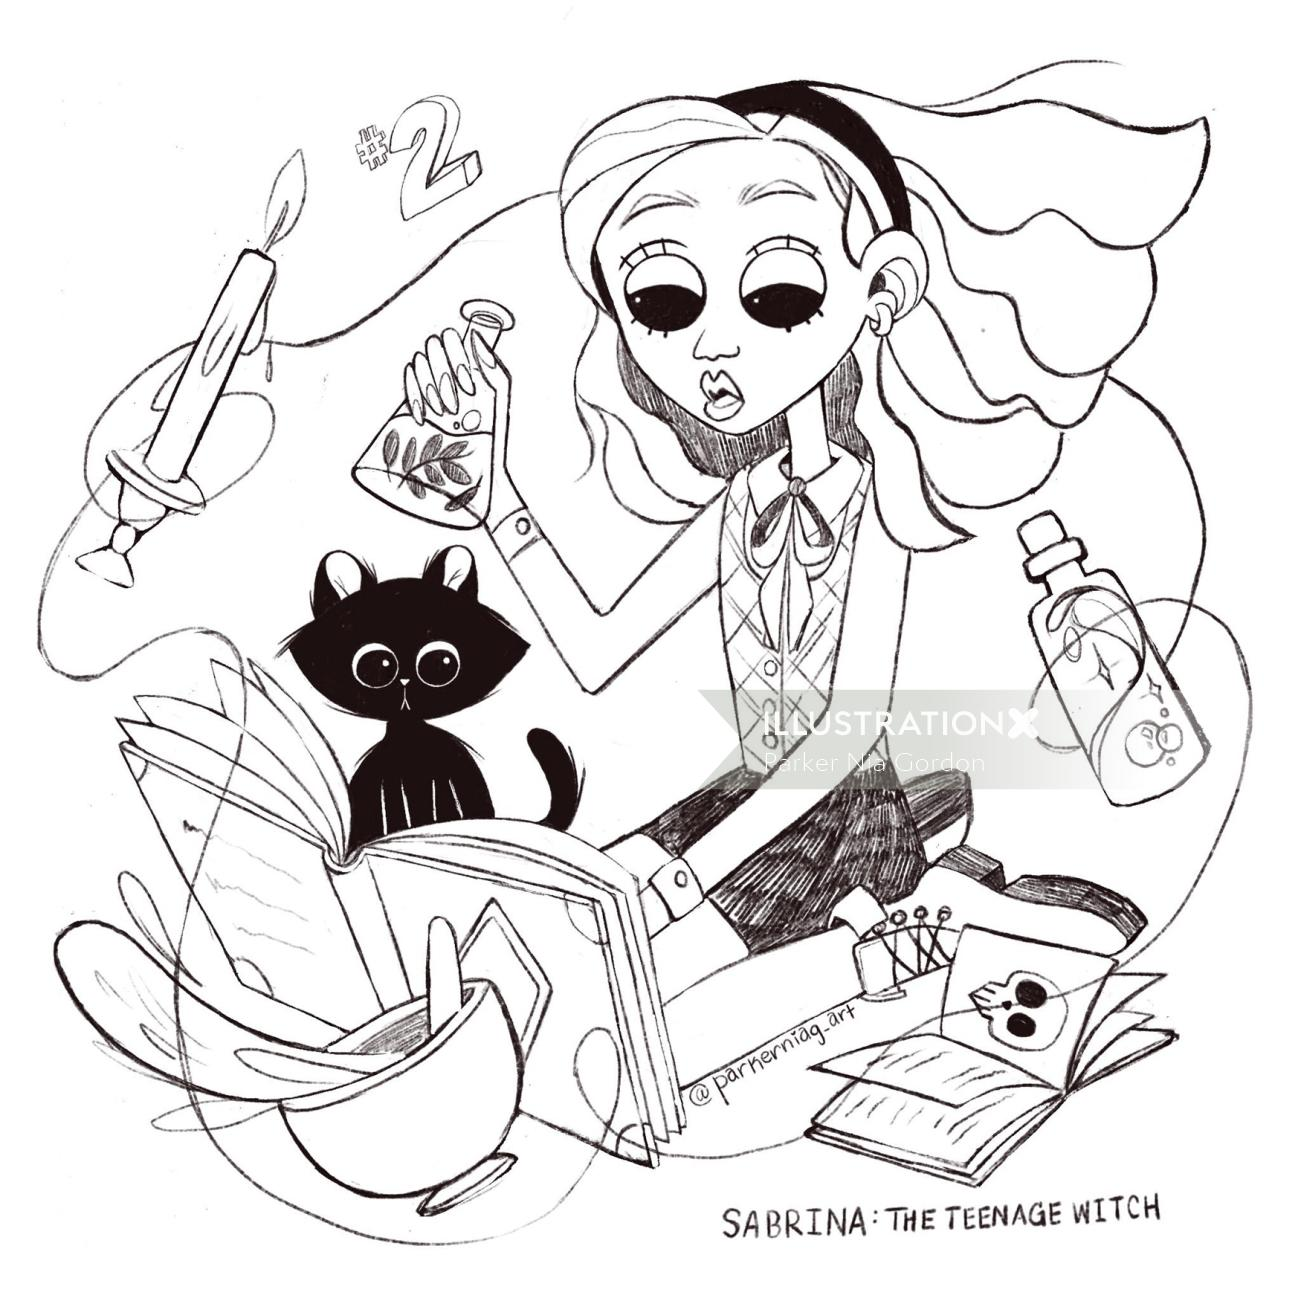 Line drawing of the teenage witch